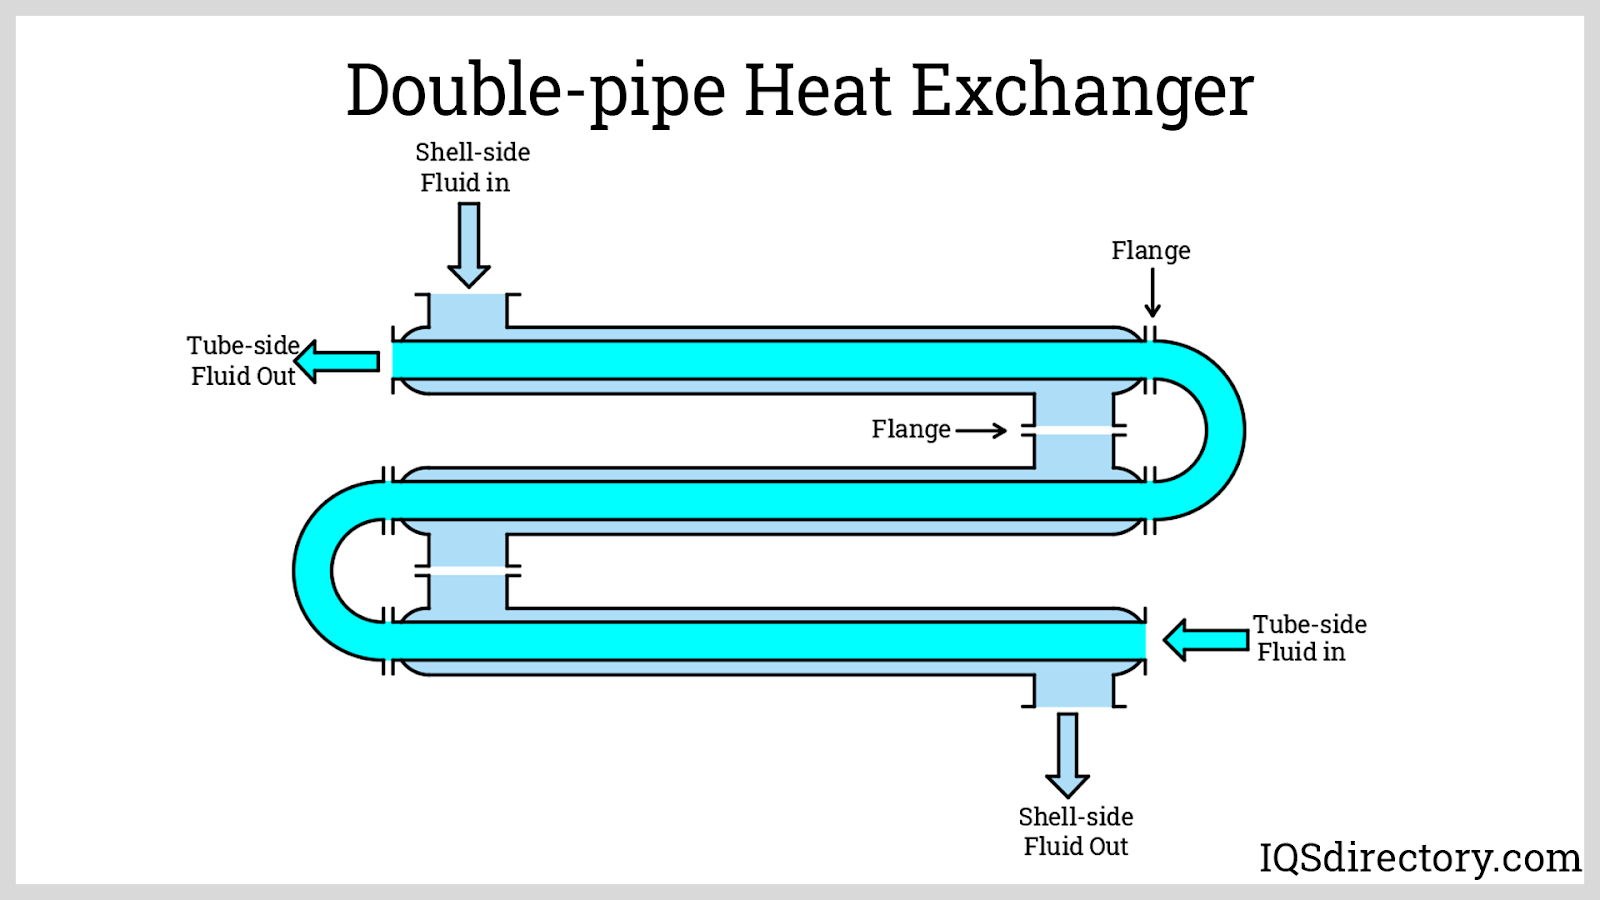 Double-pipe Heat Exchanger